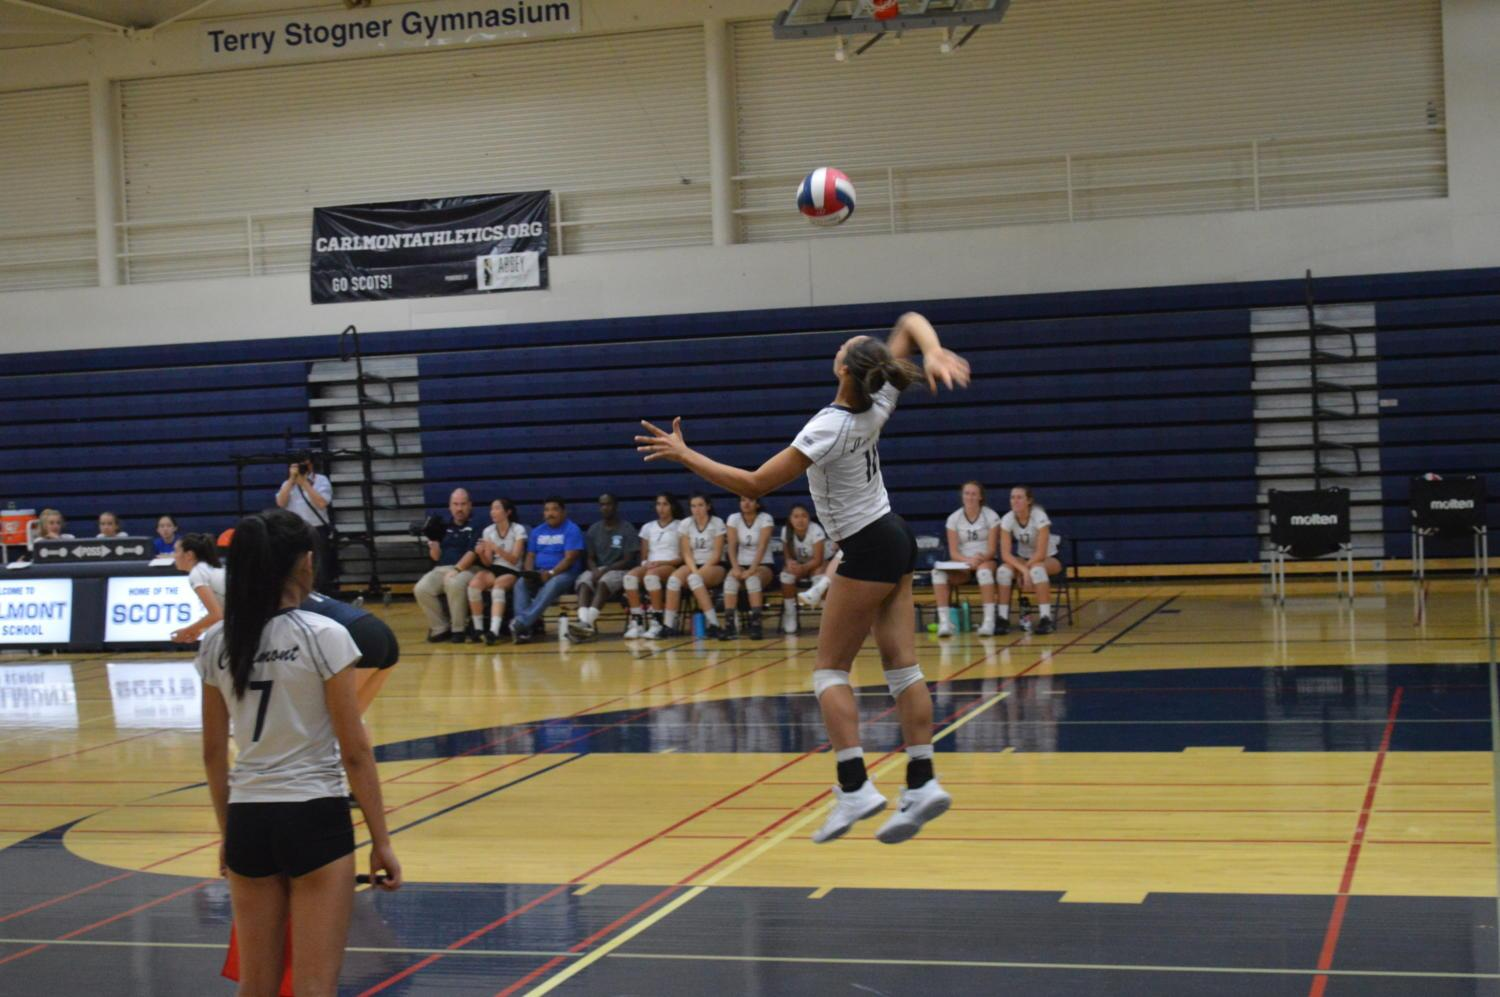 Sophomore+Morgan+McClellan+aces+her+jump-serve+to+score+a+point.